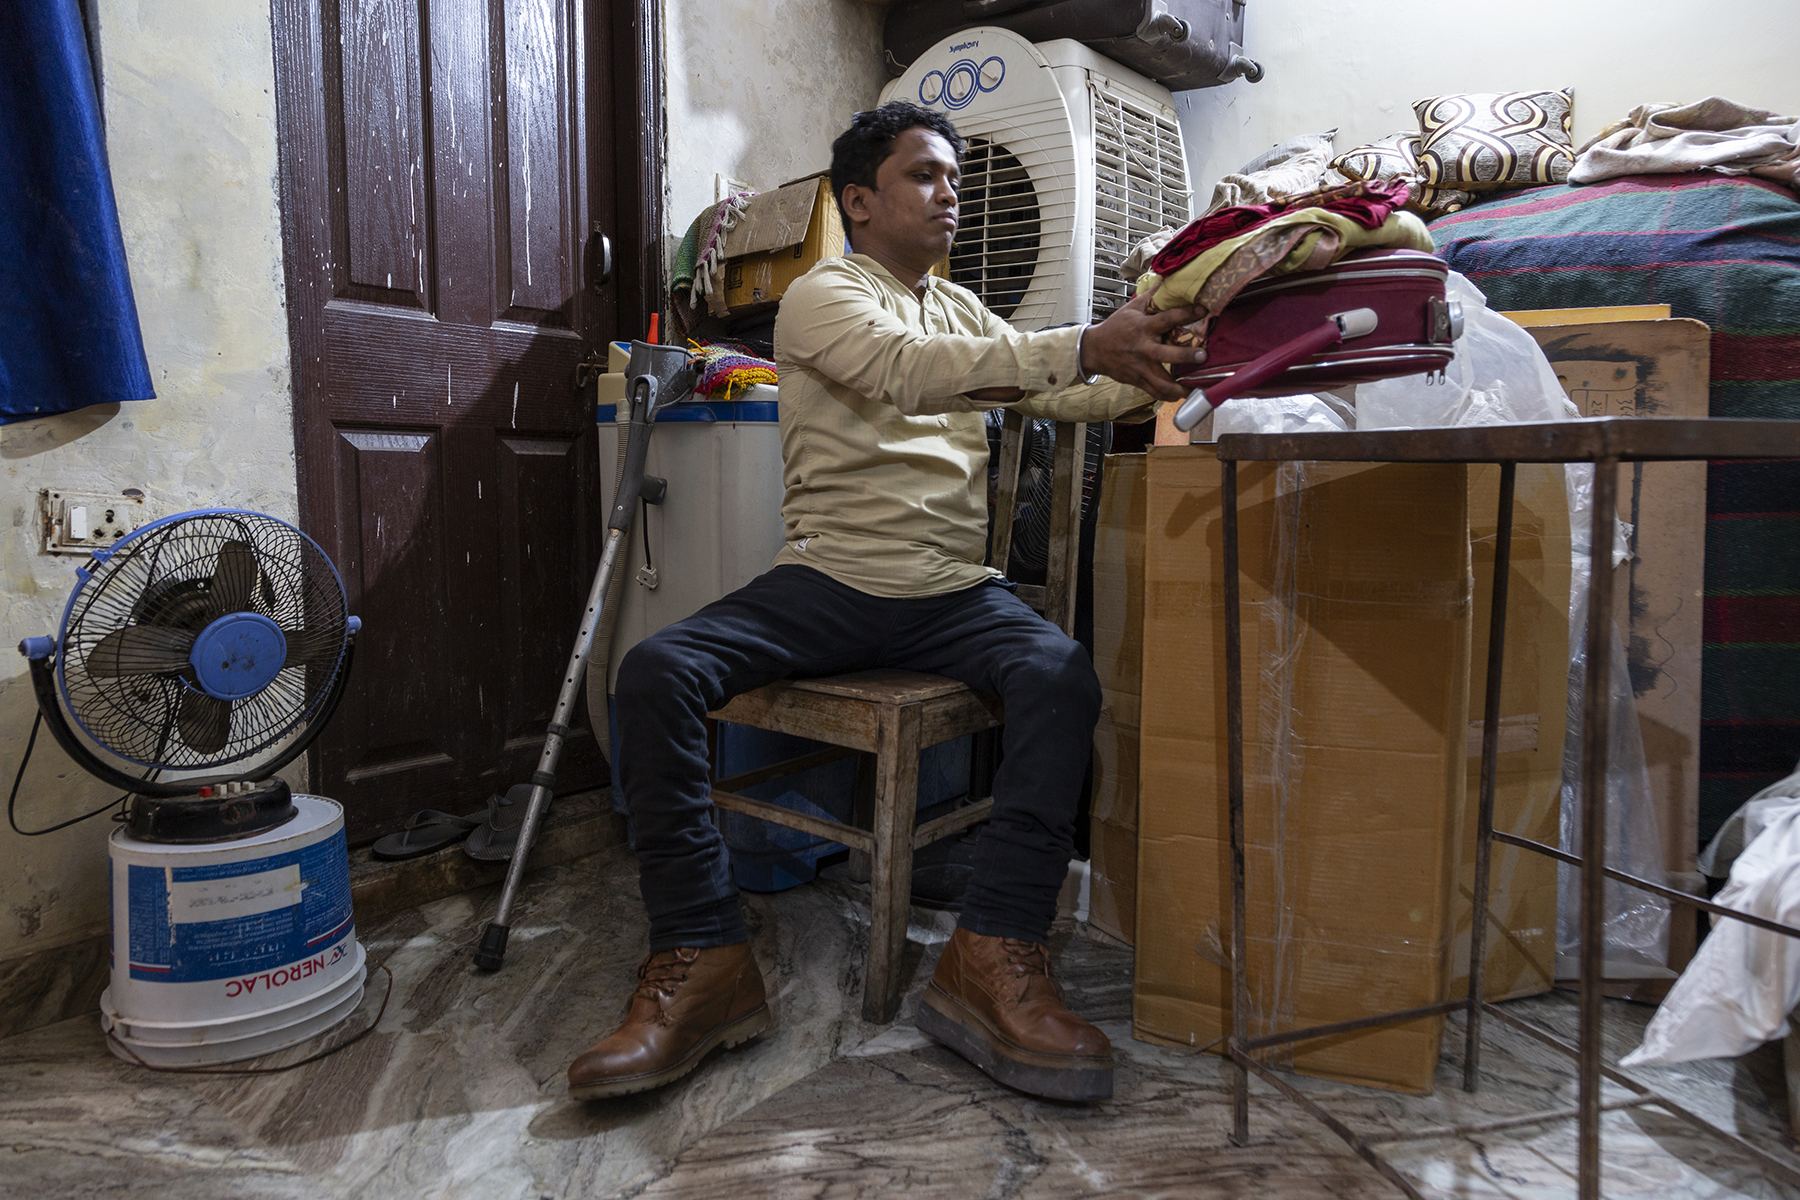 Niyaz sits in a room on a wooden chair facing us. He is leaning to the right to place a bundle of clothes on a metal table. His crutch is propped up to the left. In the left bottom corner, a blue table fan is placed on top of an upside down white plastic bucket.